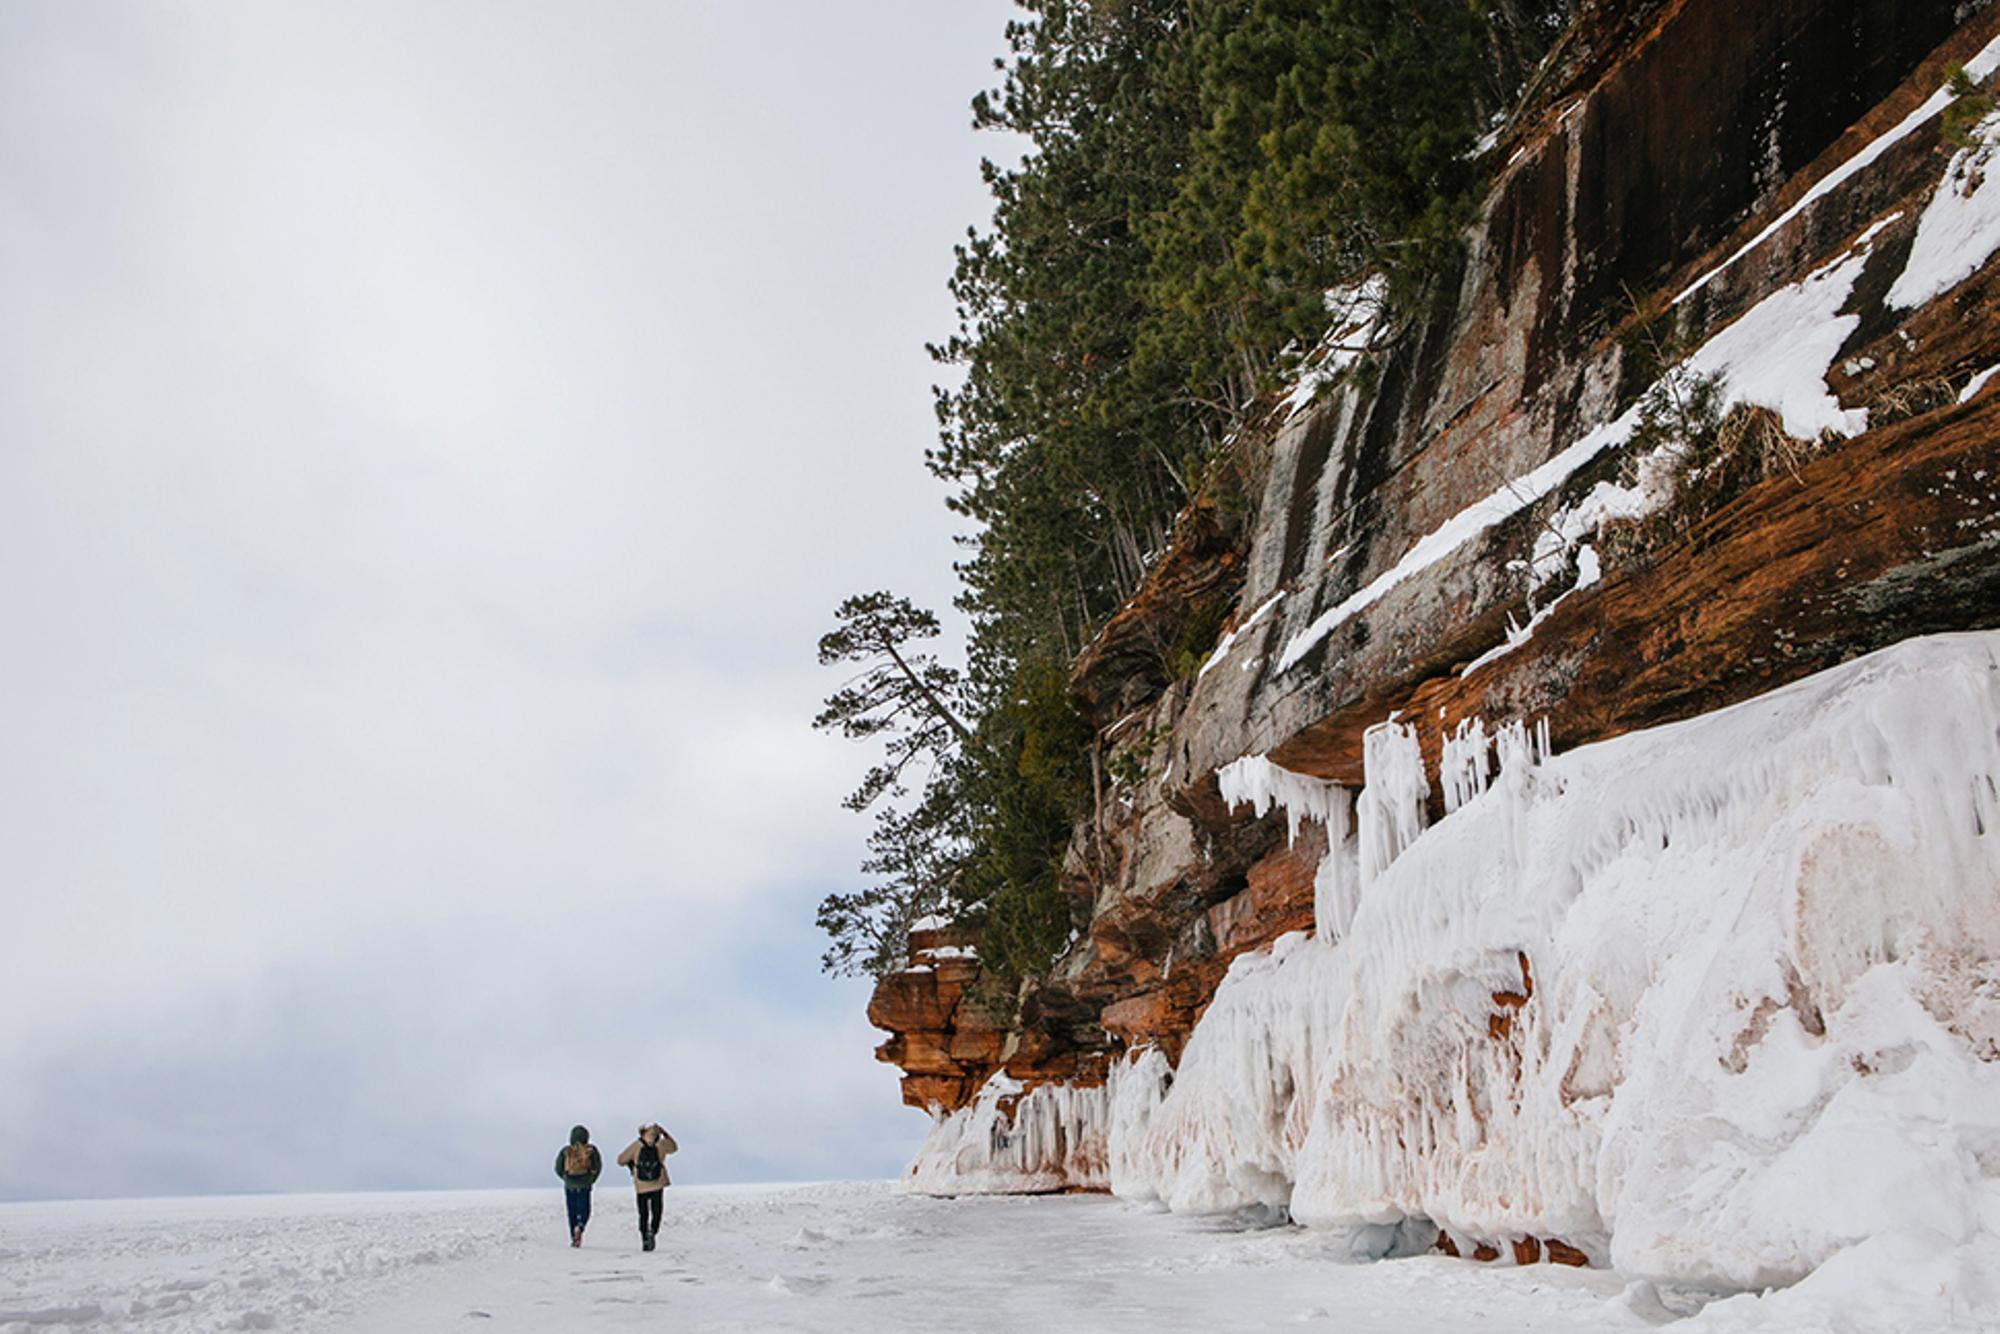 Rad Reportage: Exploring the Frozen Apostle Island Sea Caves